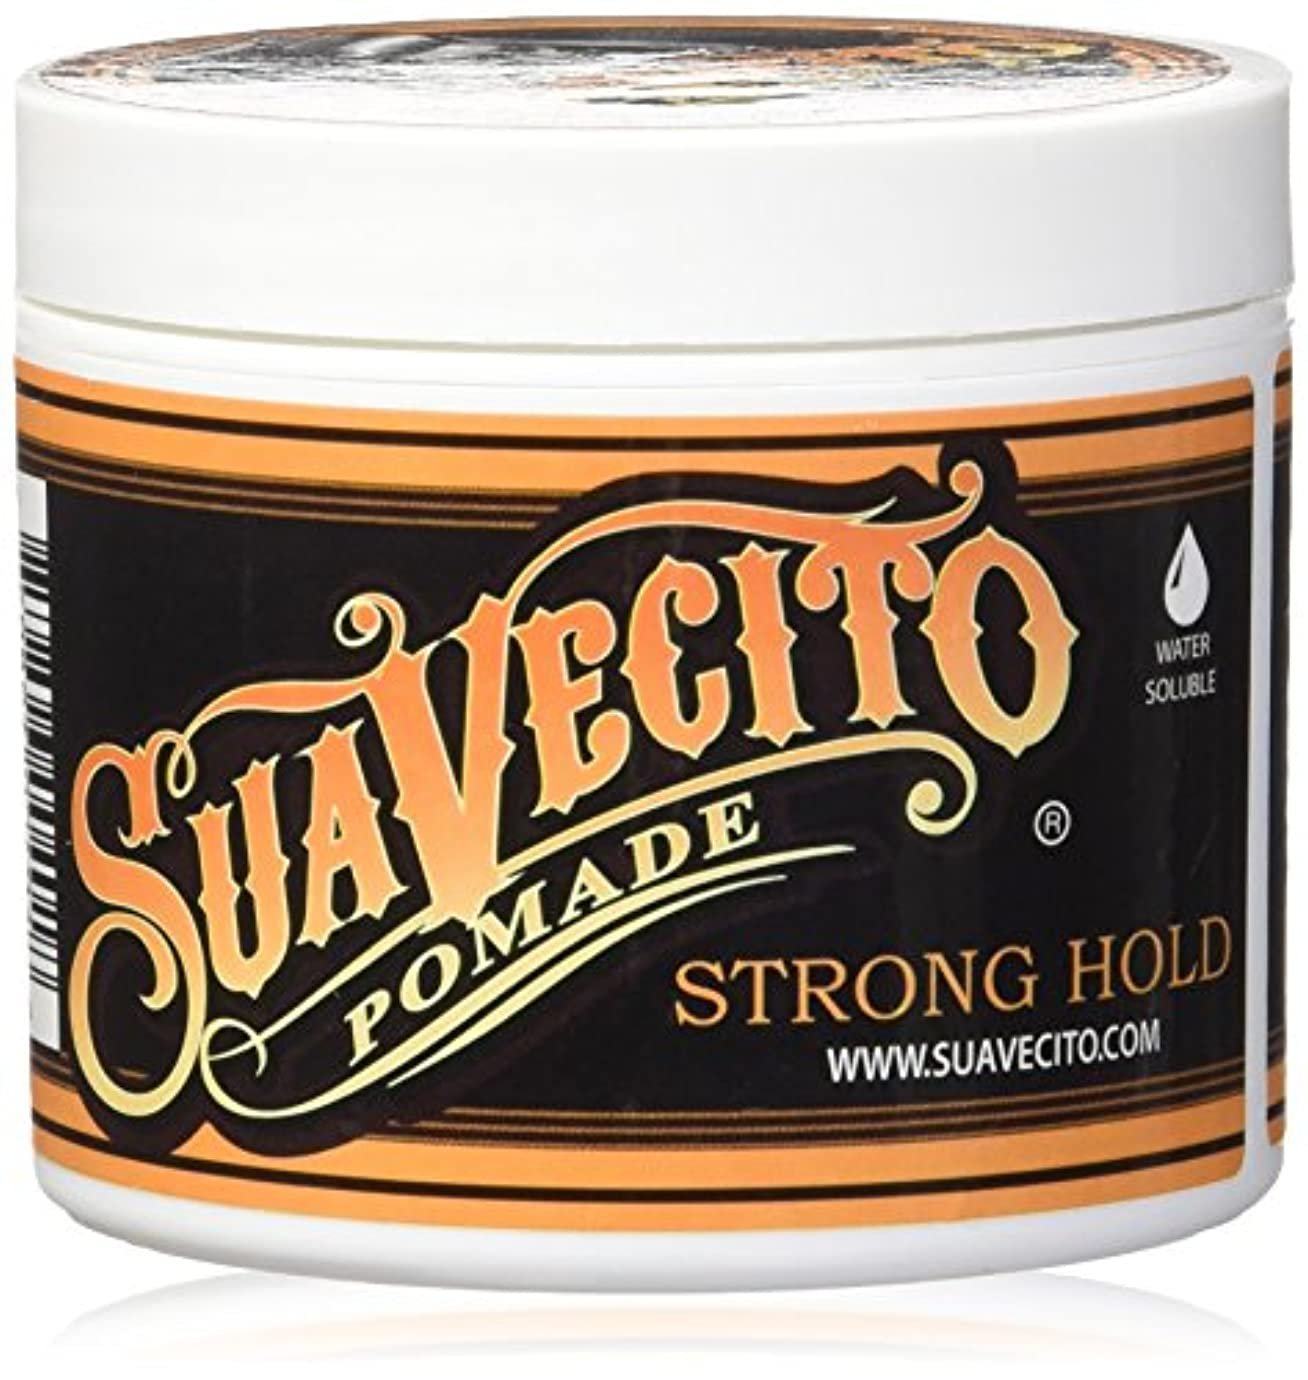 (Standard) - Suavecito Pomade Firme Hold, 120ml